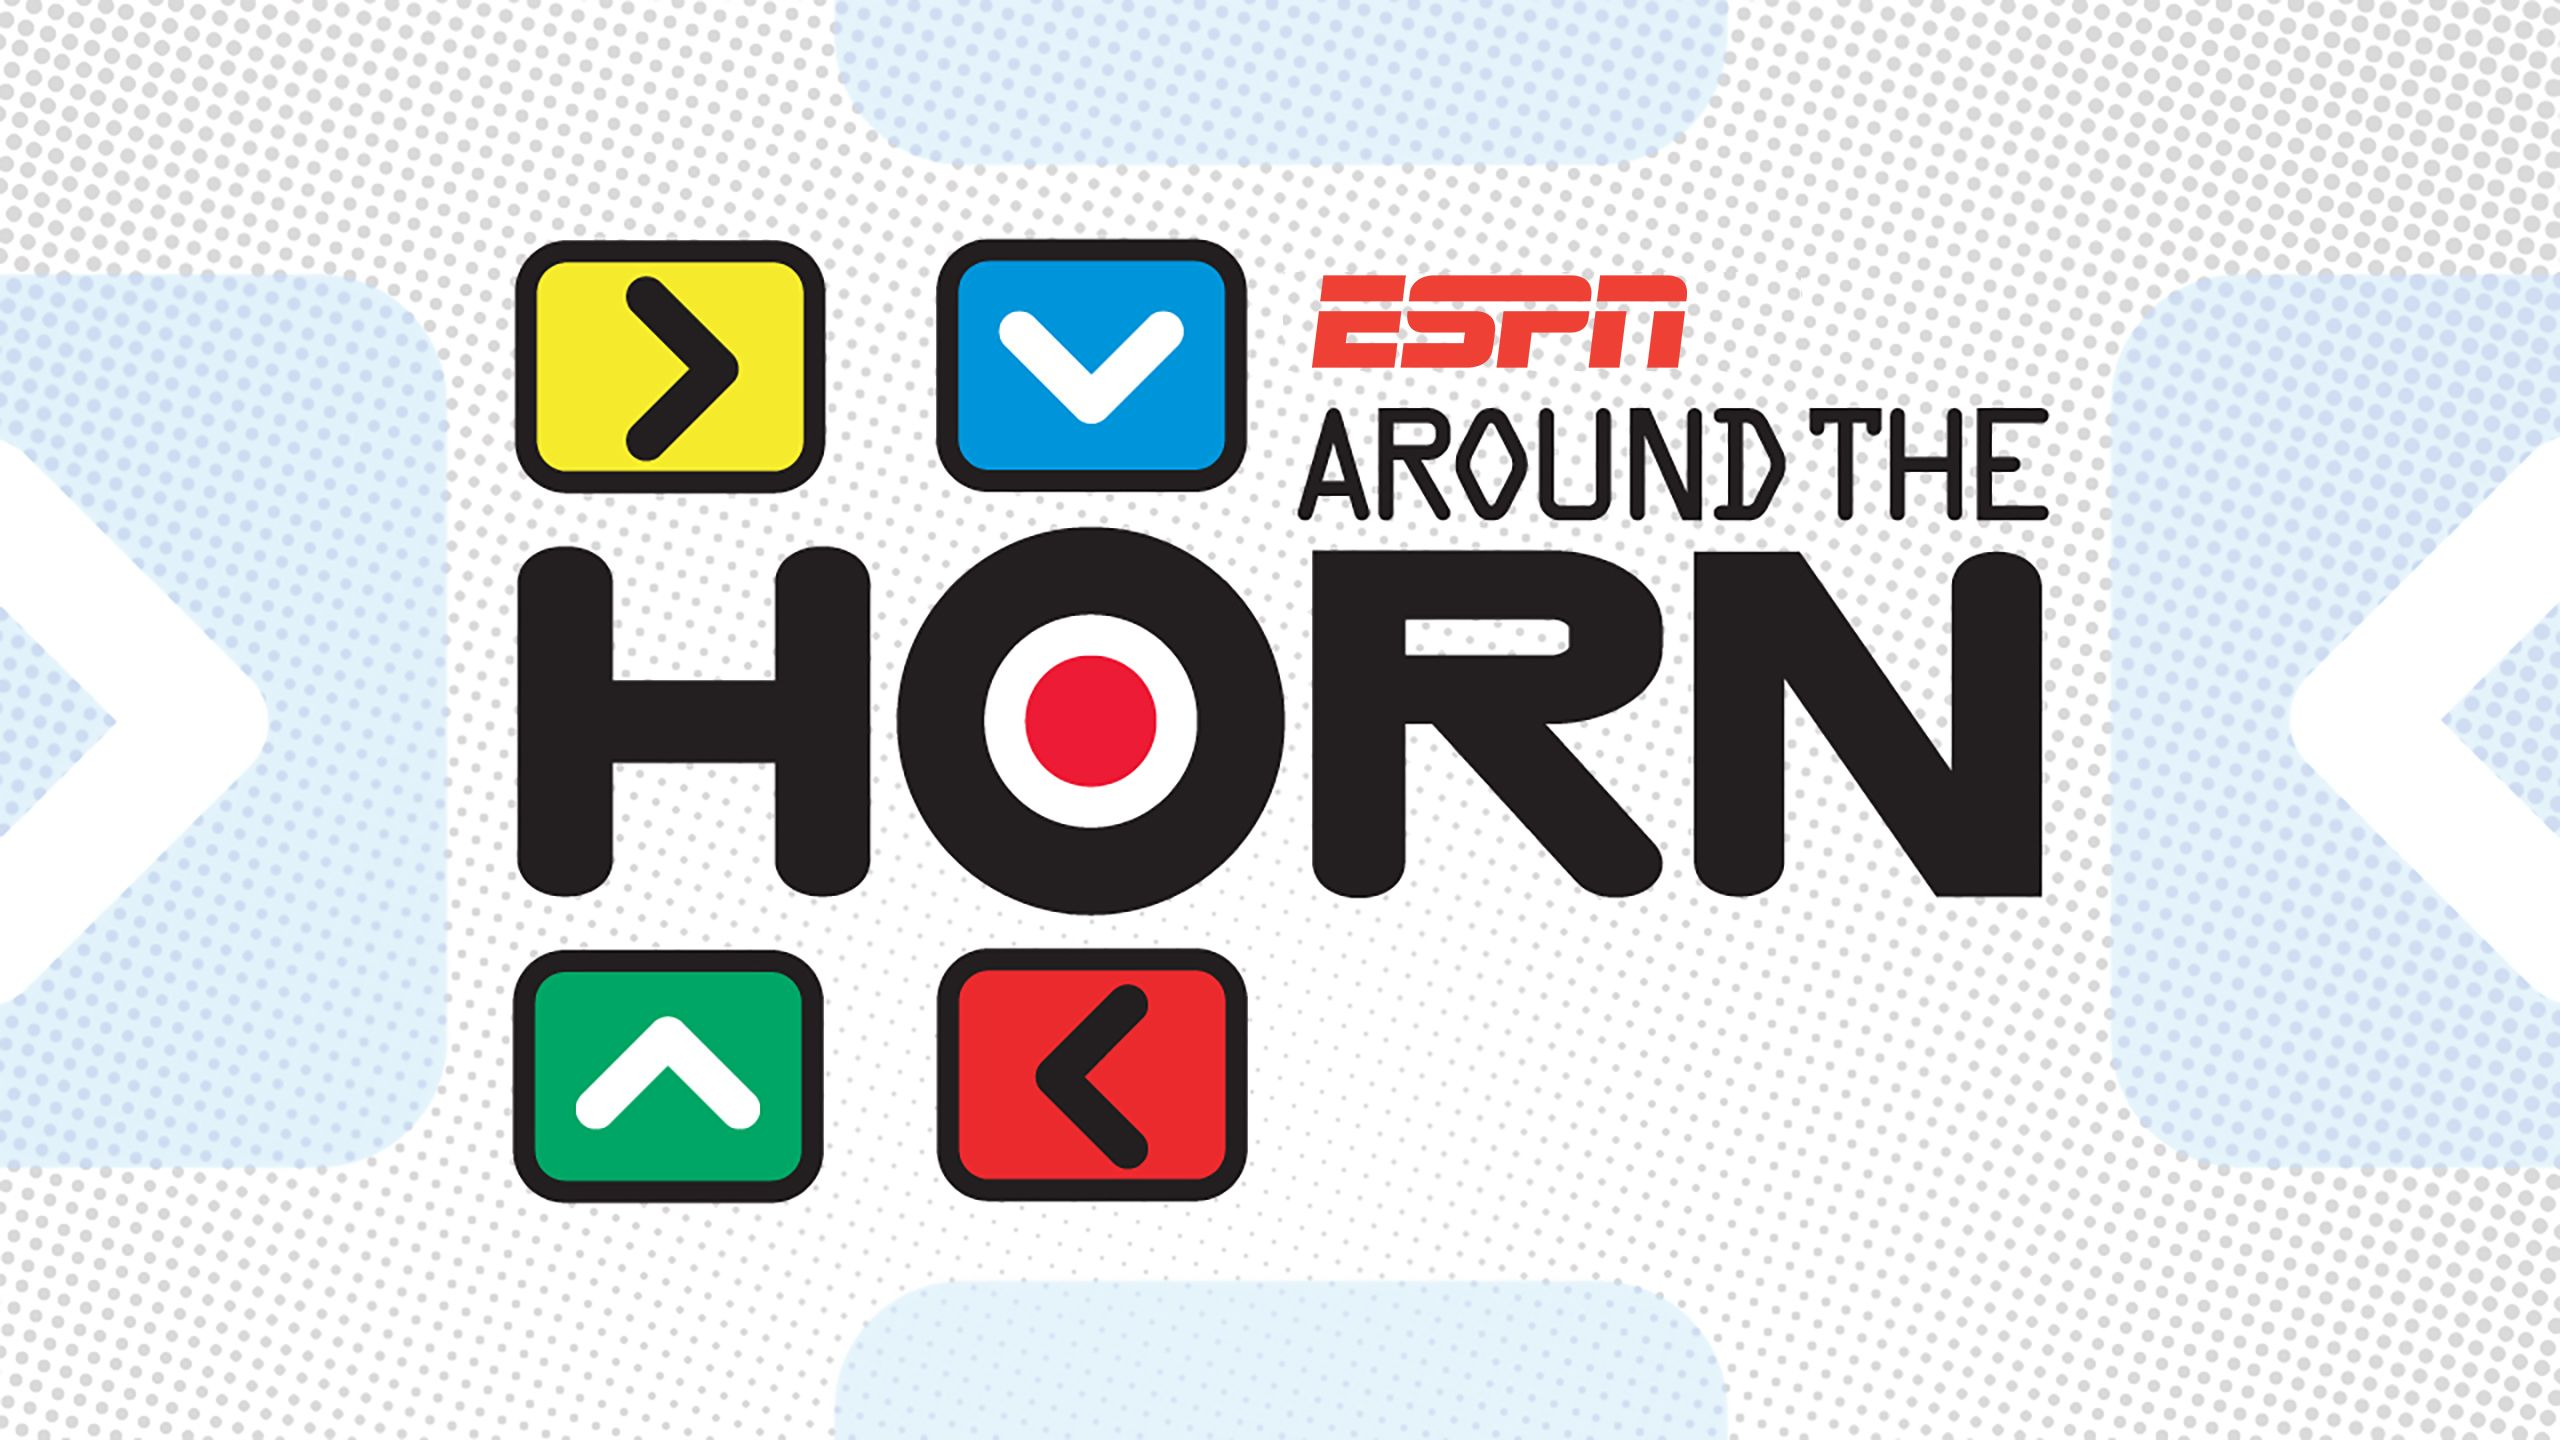 Fri, 11/17 - Around The Horn